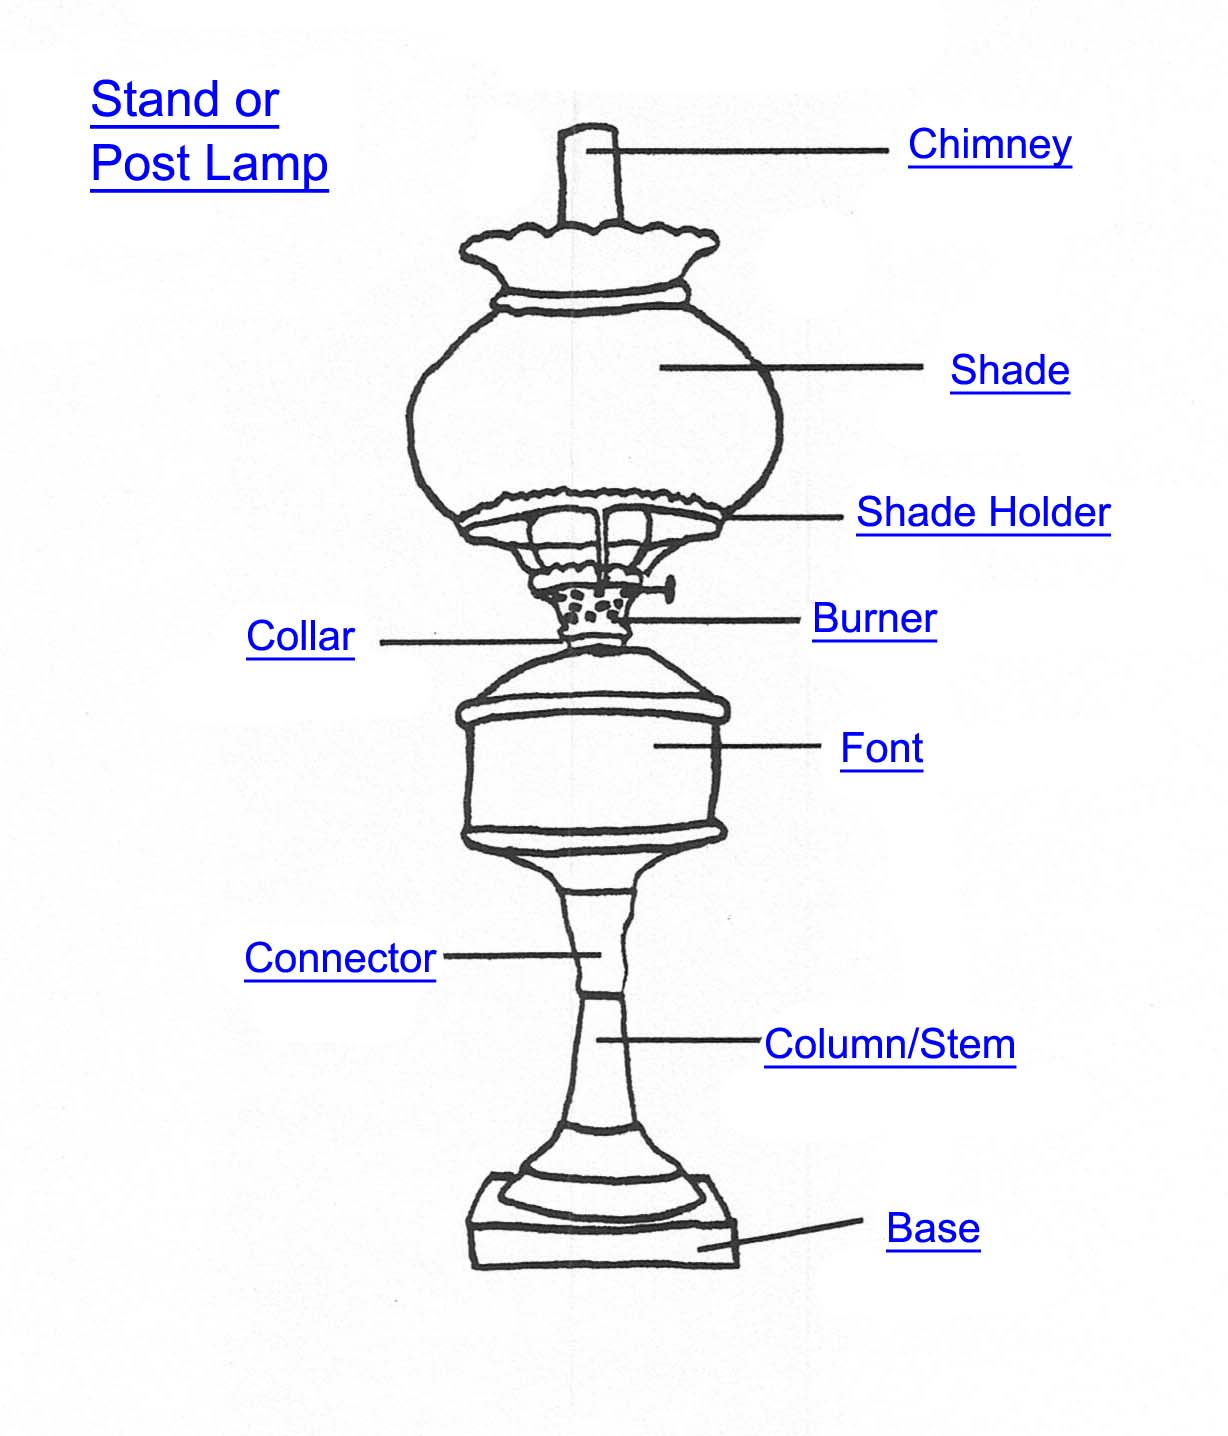 Post Lamp Part Index